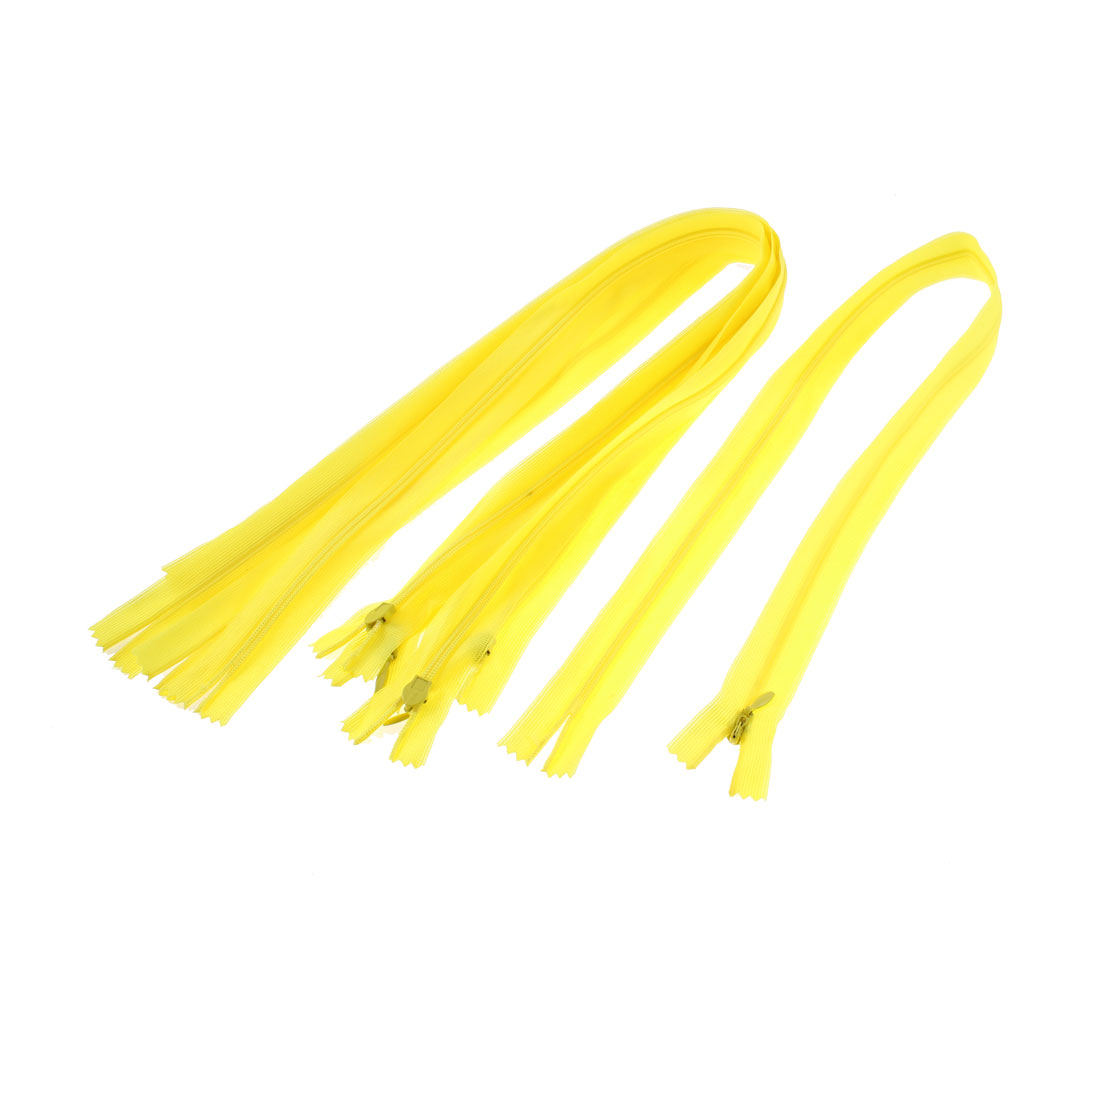 5 Pcs Yellow Nylon Dress Zippers Tailor Sewing Tools 24-inch